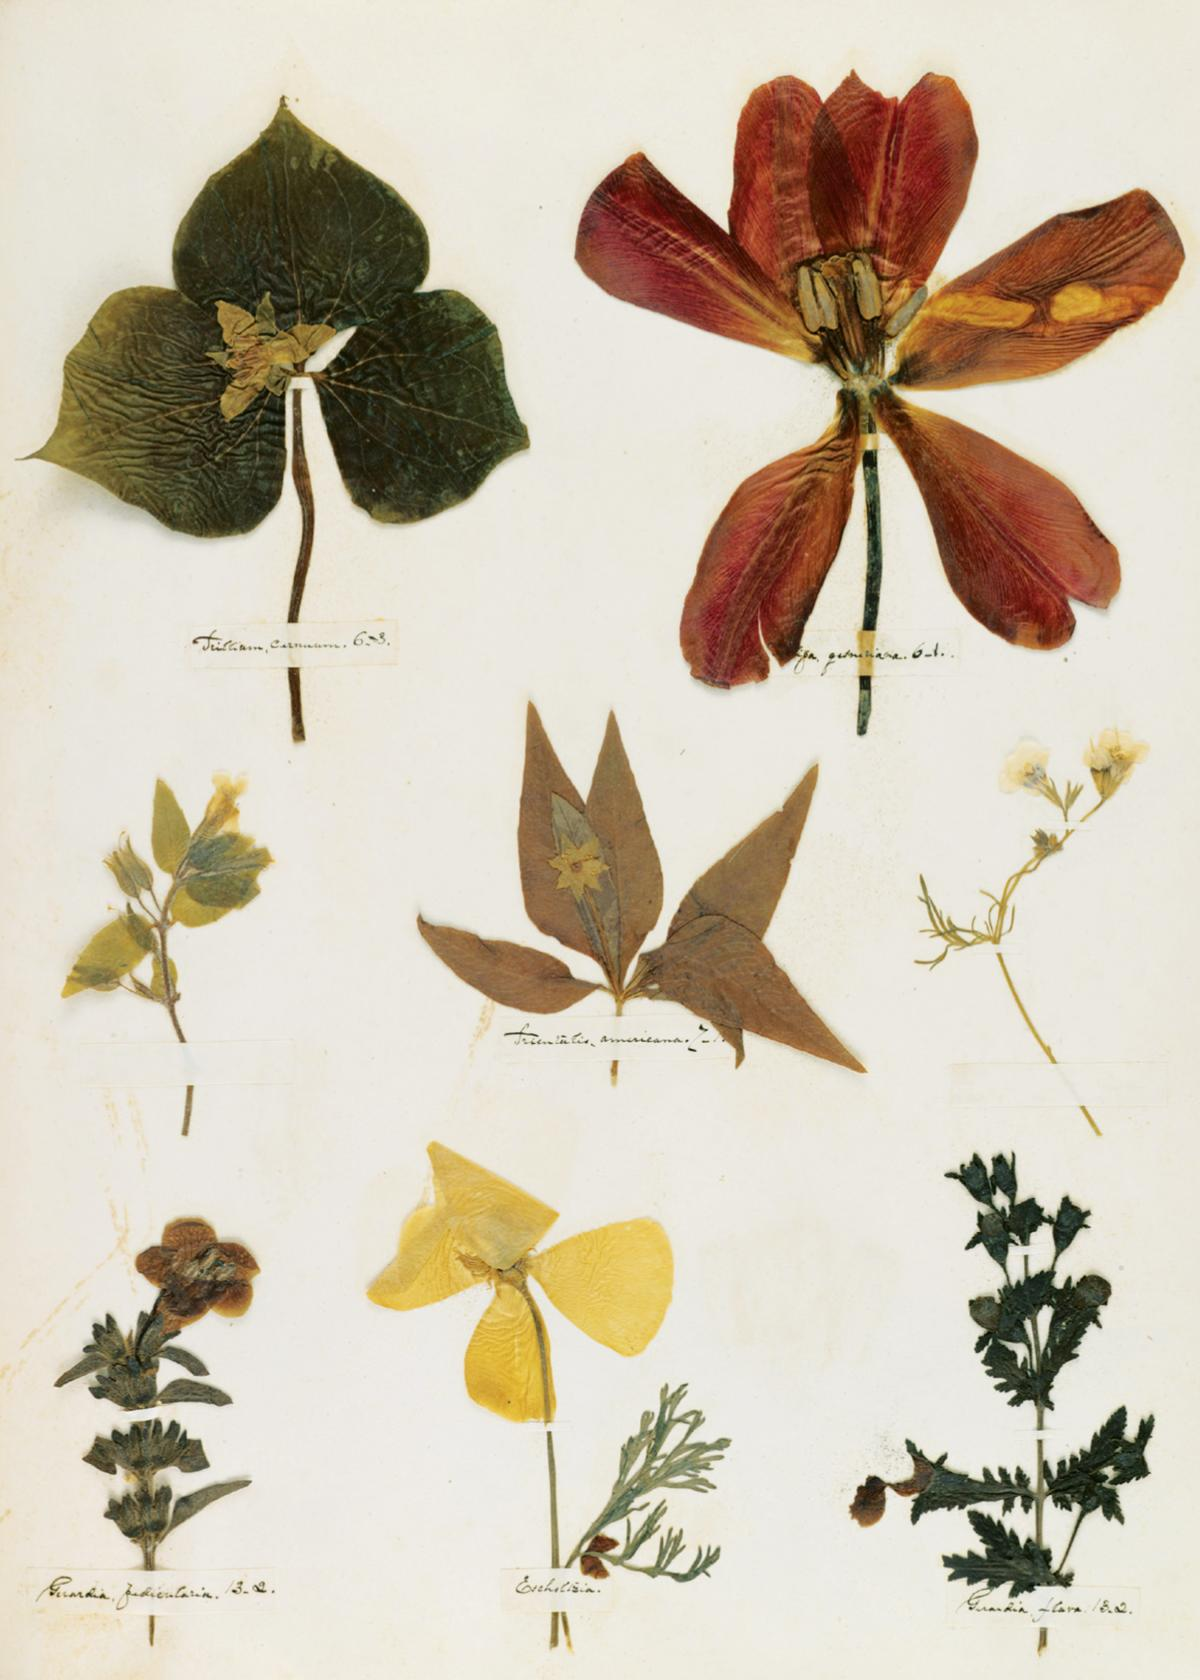 Photograph of pressed flowers